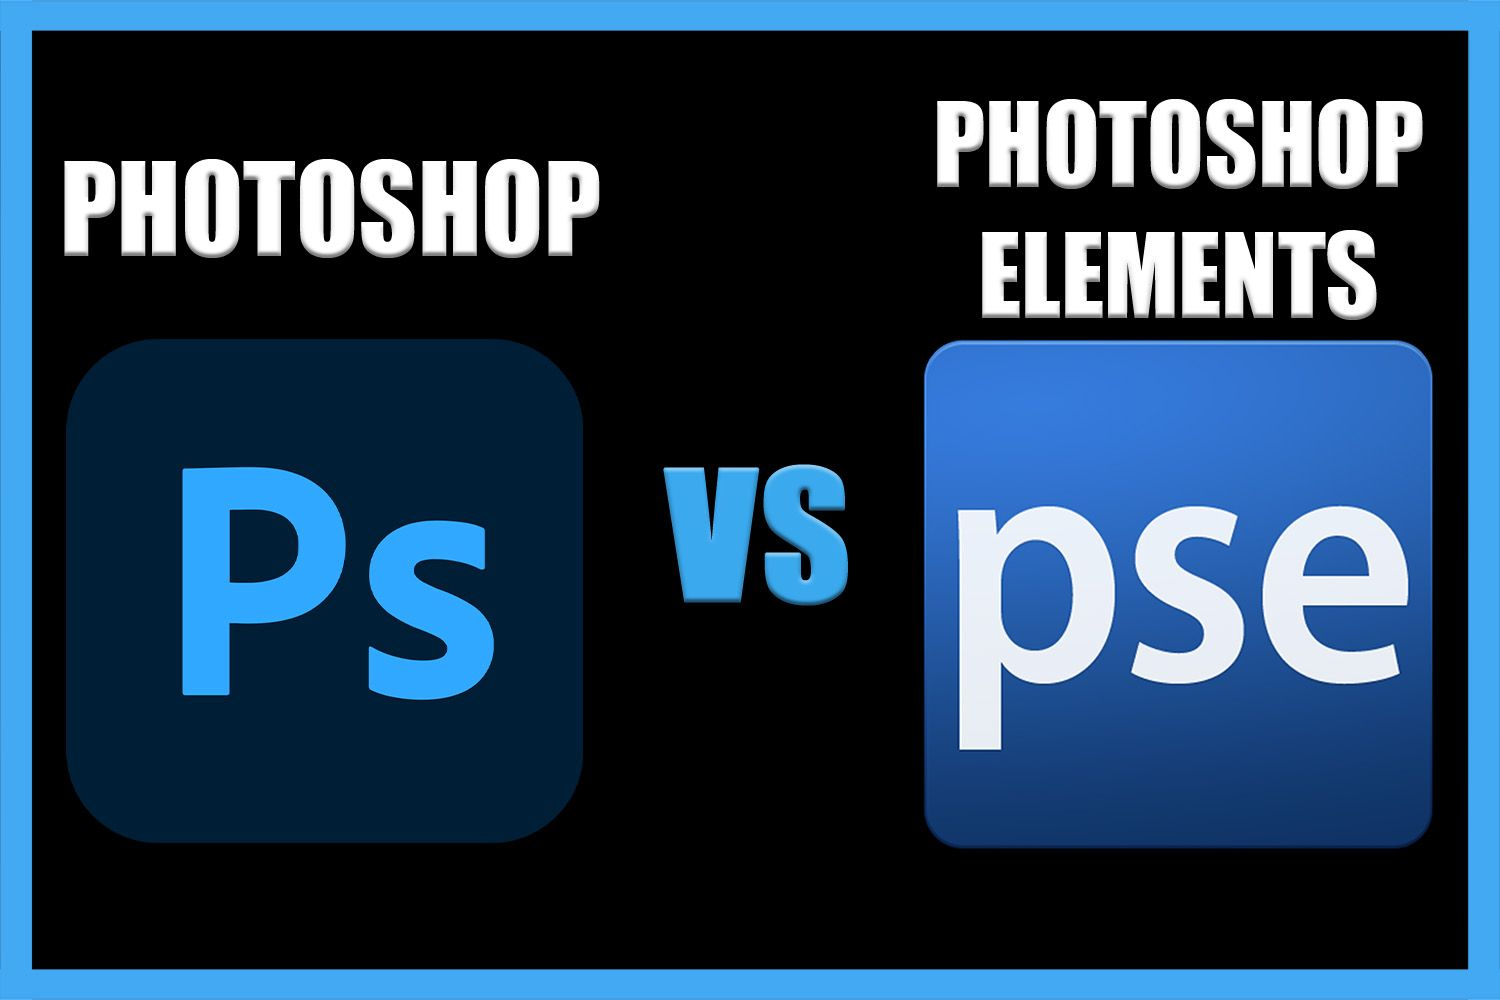 Difference between Photoshop and Photoshop Elements